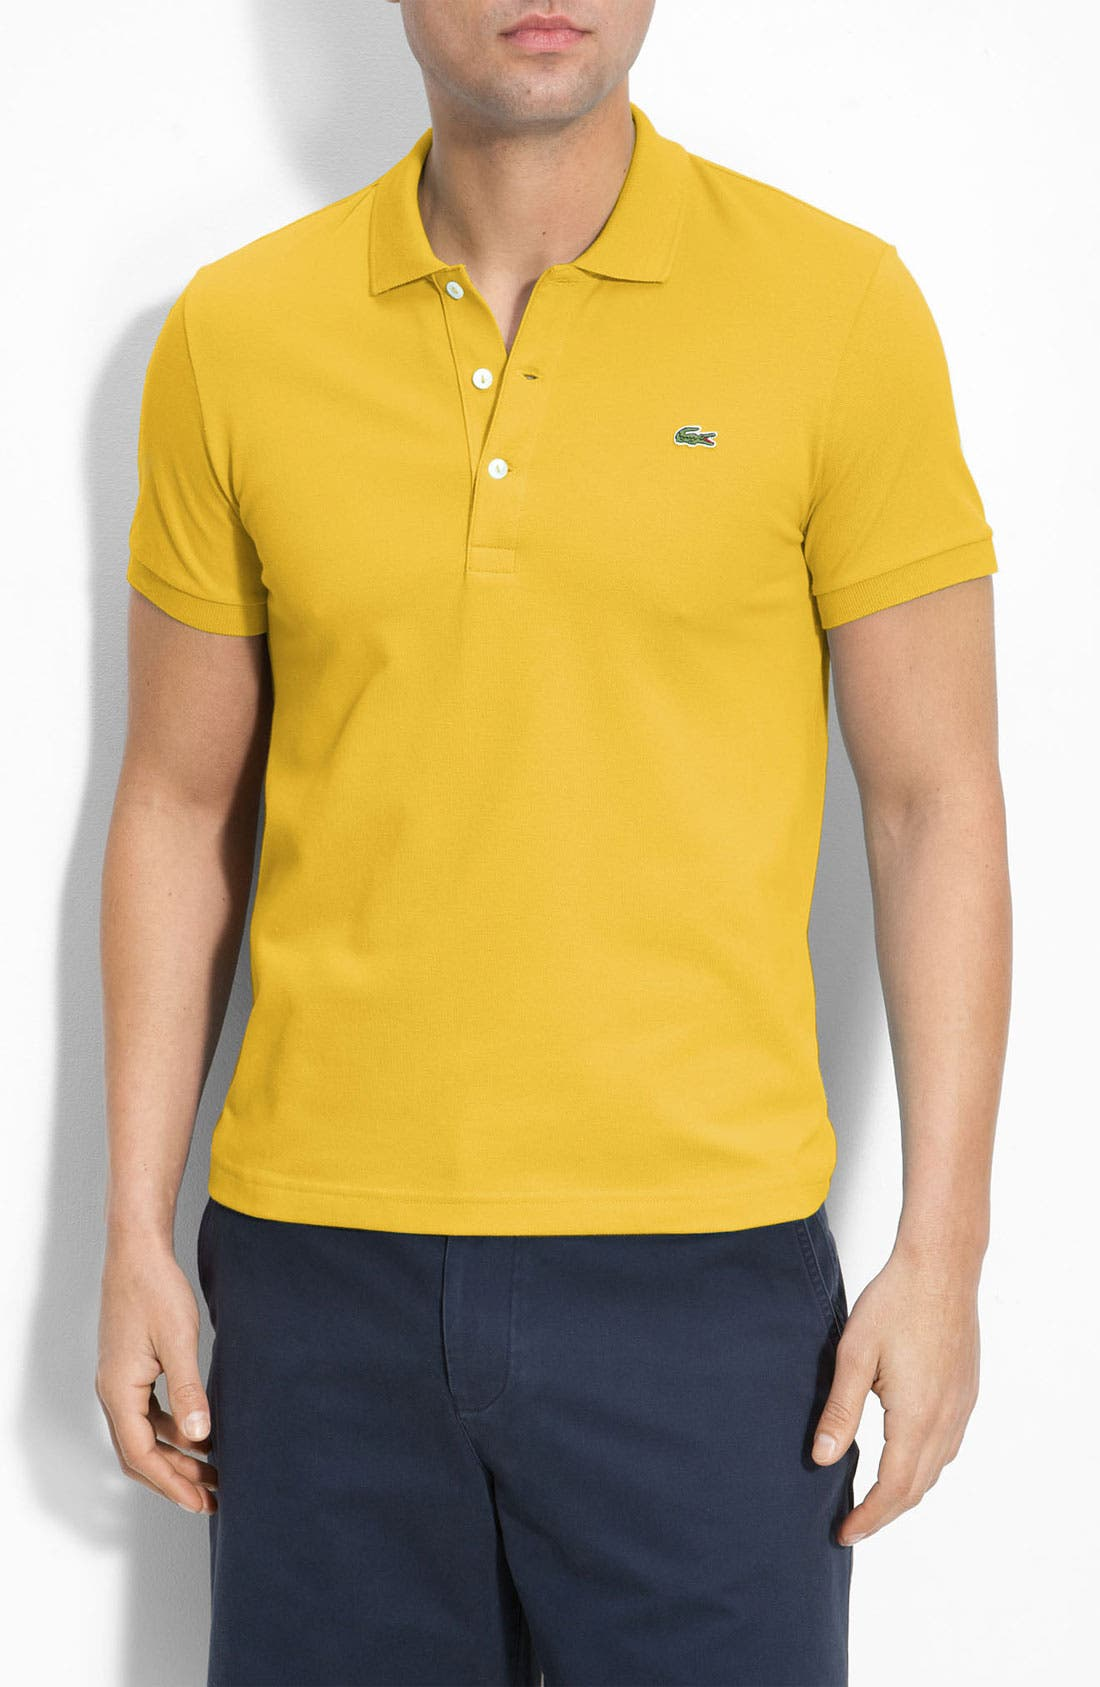 Alternate Image 1 Selected - Lacoste Stretch Piqué Polo